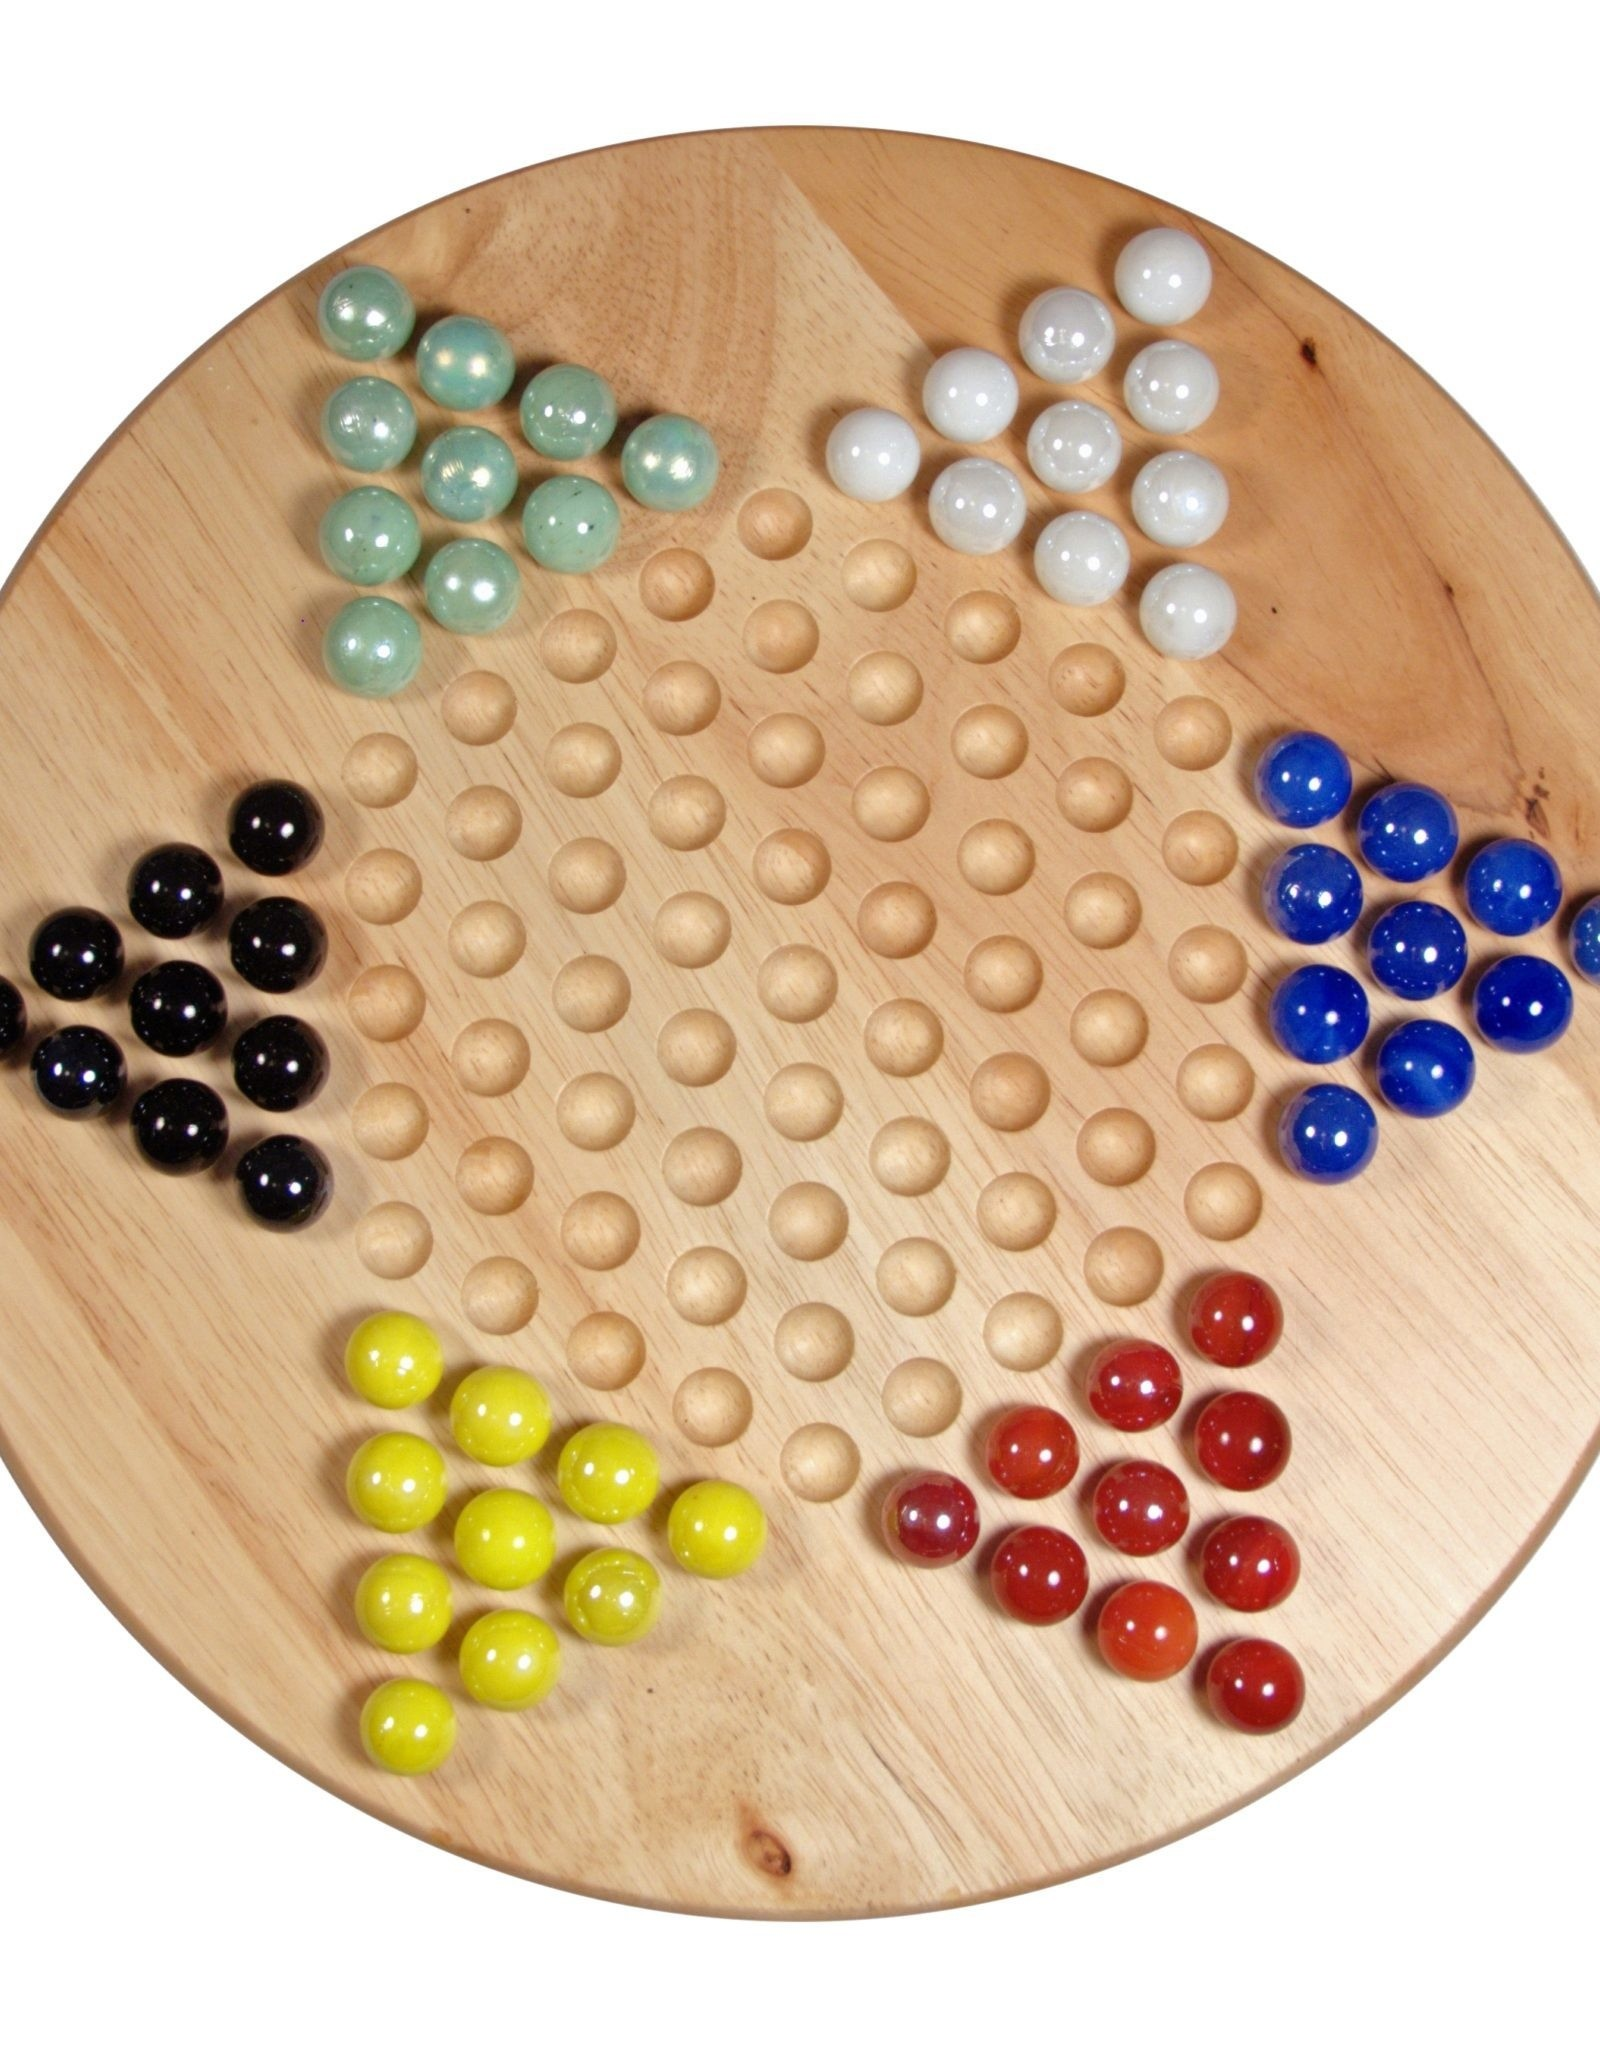 Chinese Checkers Set with Glass Marbles 11.5 Inch